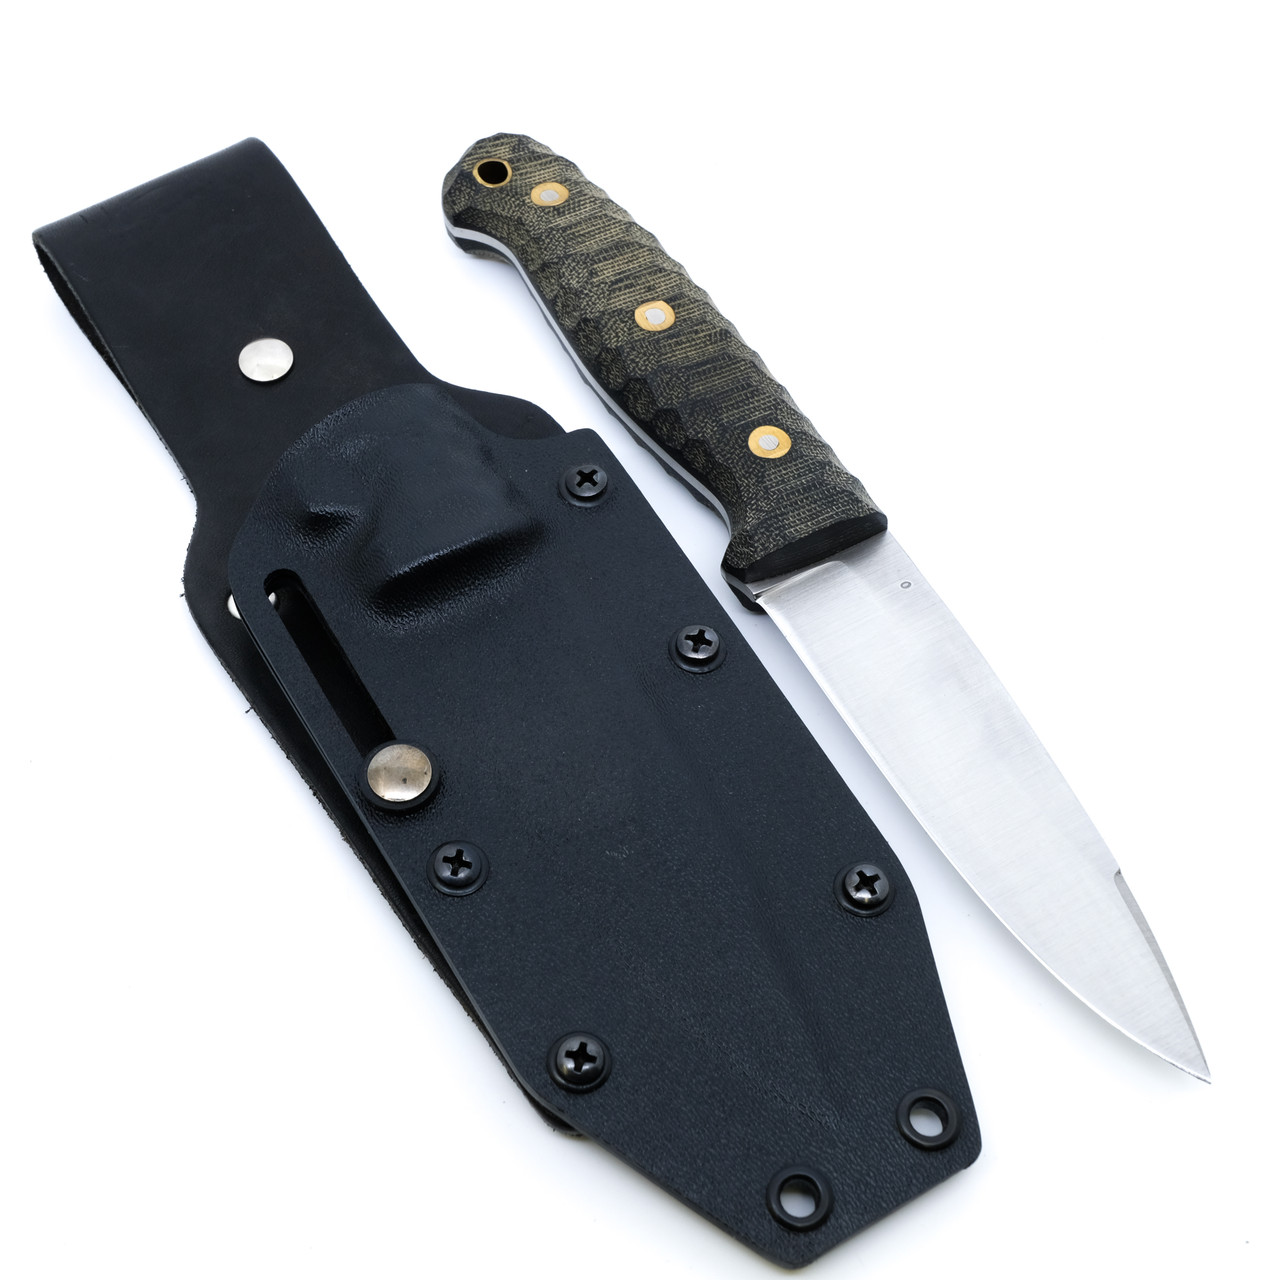 LT Wright GNS 01 Saber False Edge Black Mountain